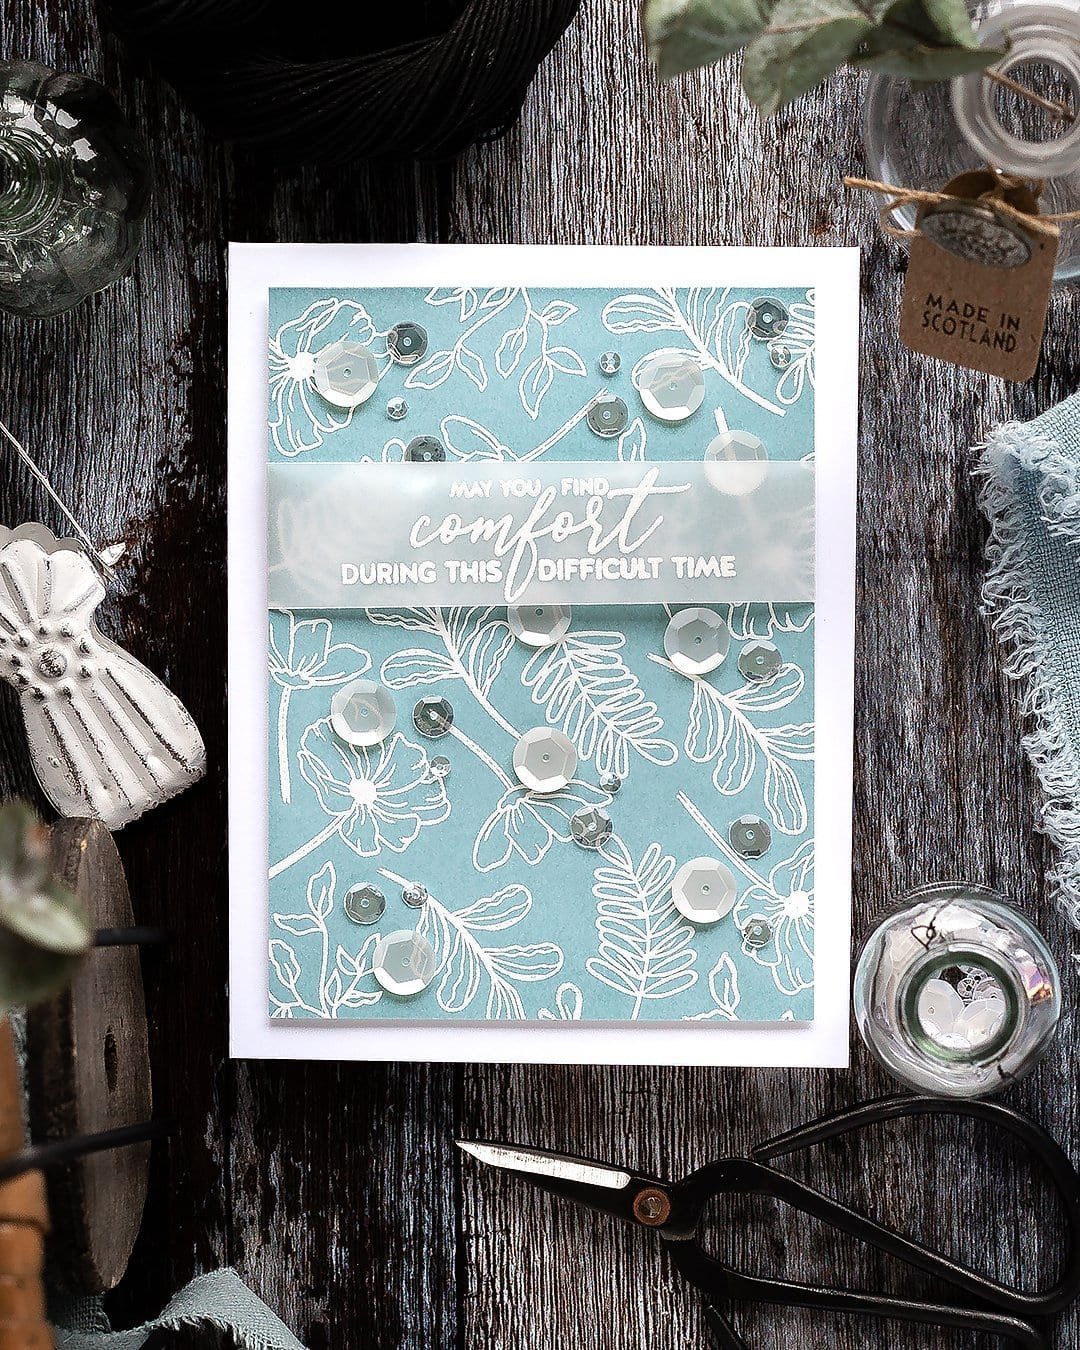 Video tutorial - simple white heat embossed flower pattern handmade sympathy card by Debby Hughes. Find out more here: https://limedoodledesign.com/2019/01/video-simple-white-embossed-flowers/